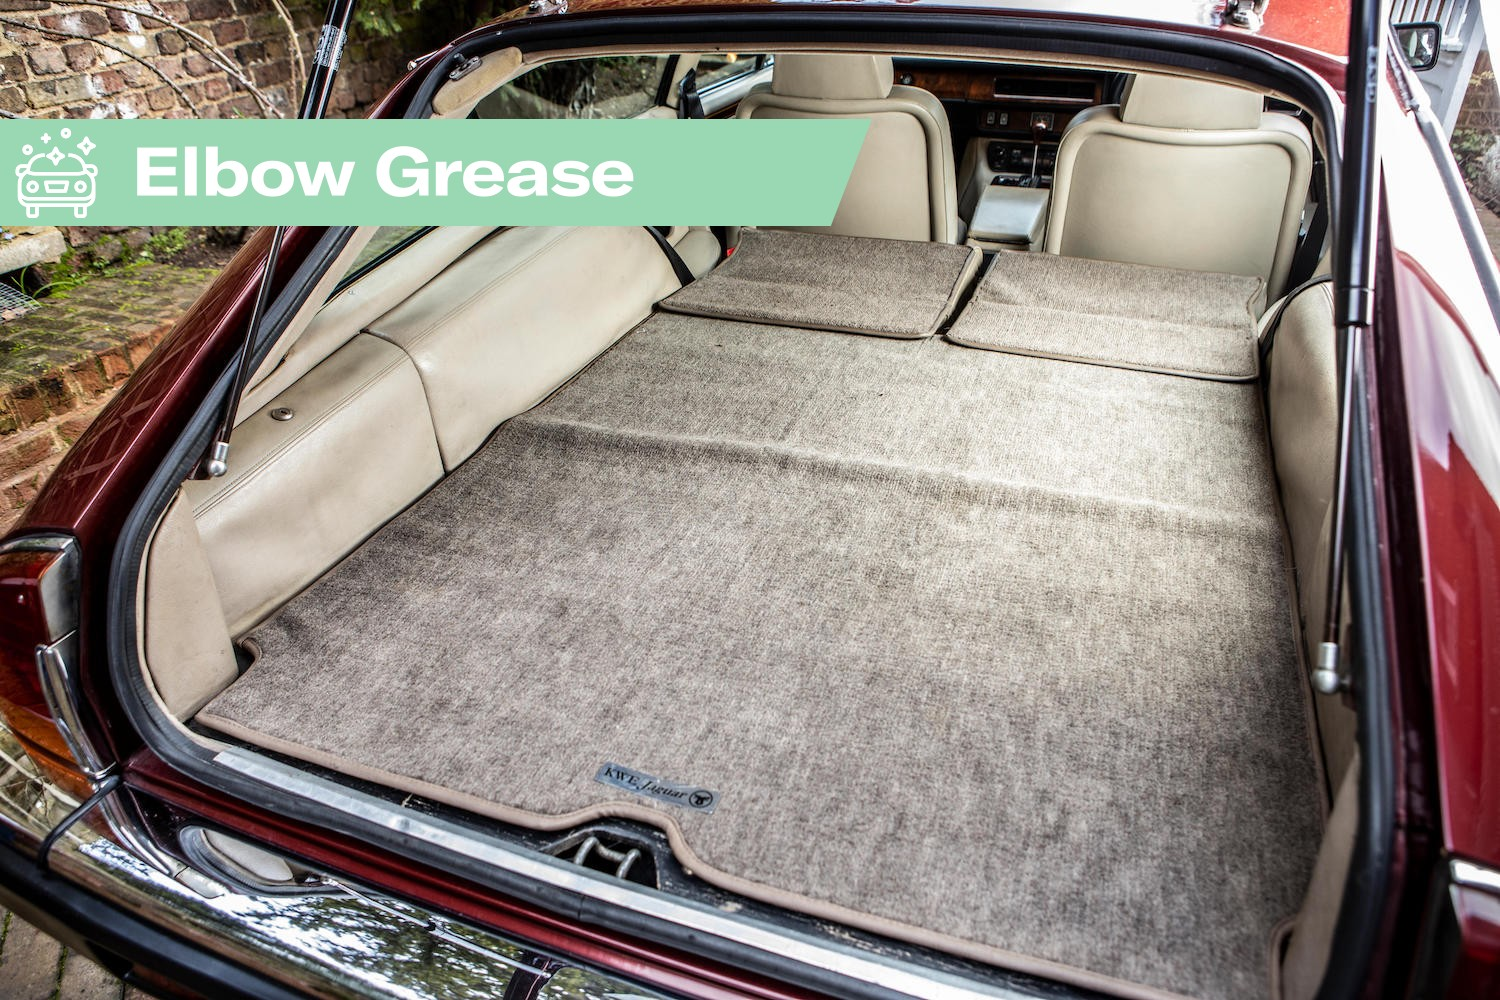 Elbow Grease: Cleaning wheels, preventing rusty brake discs and removing dog hair from carpets